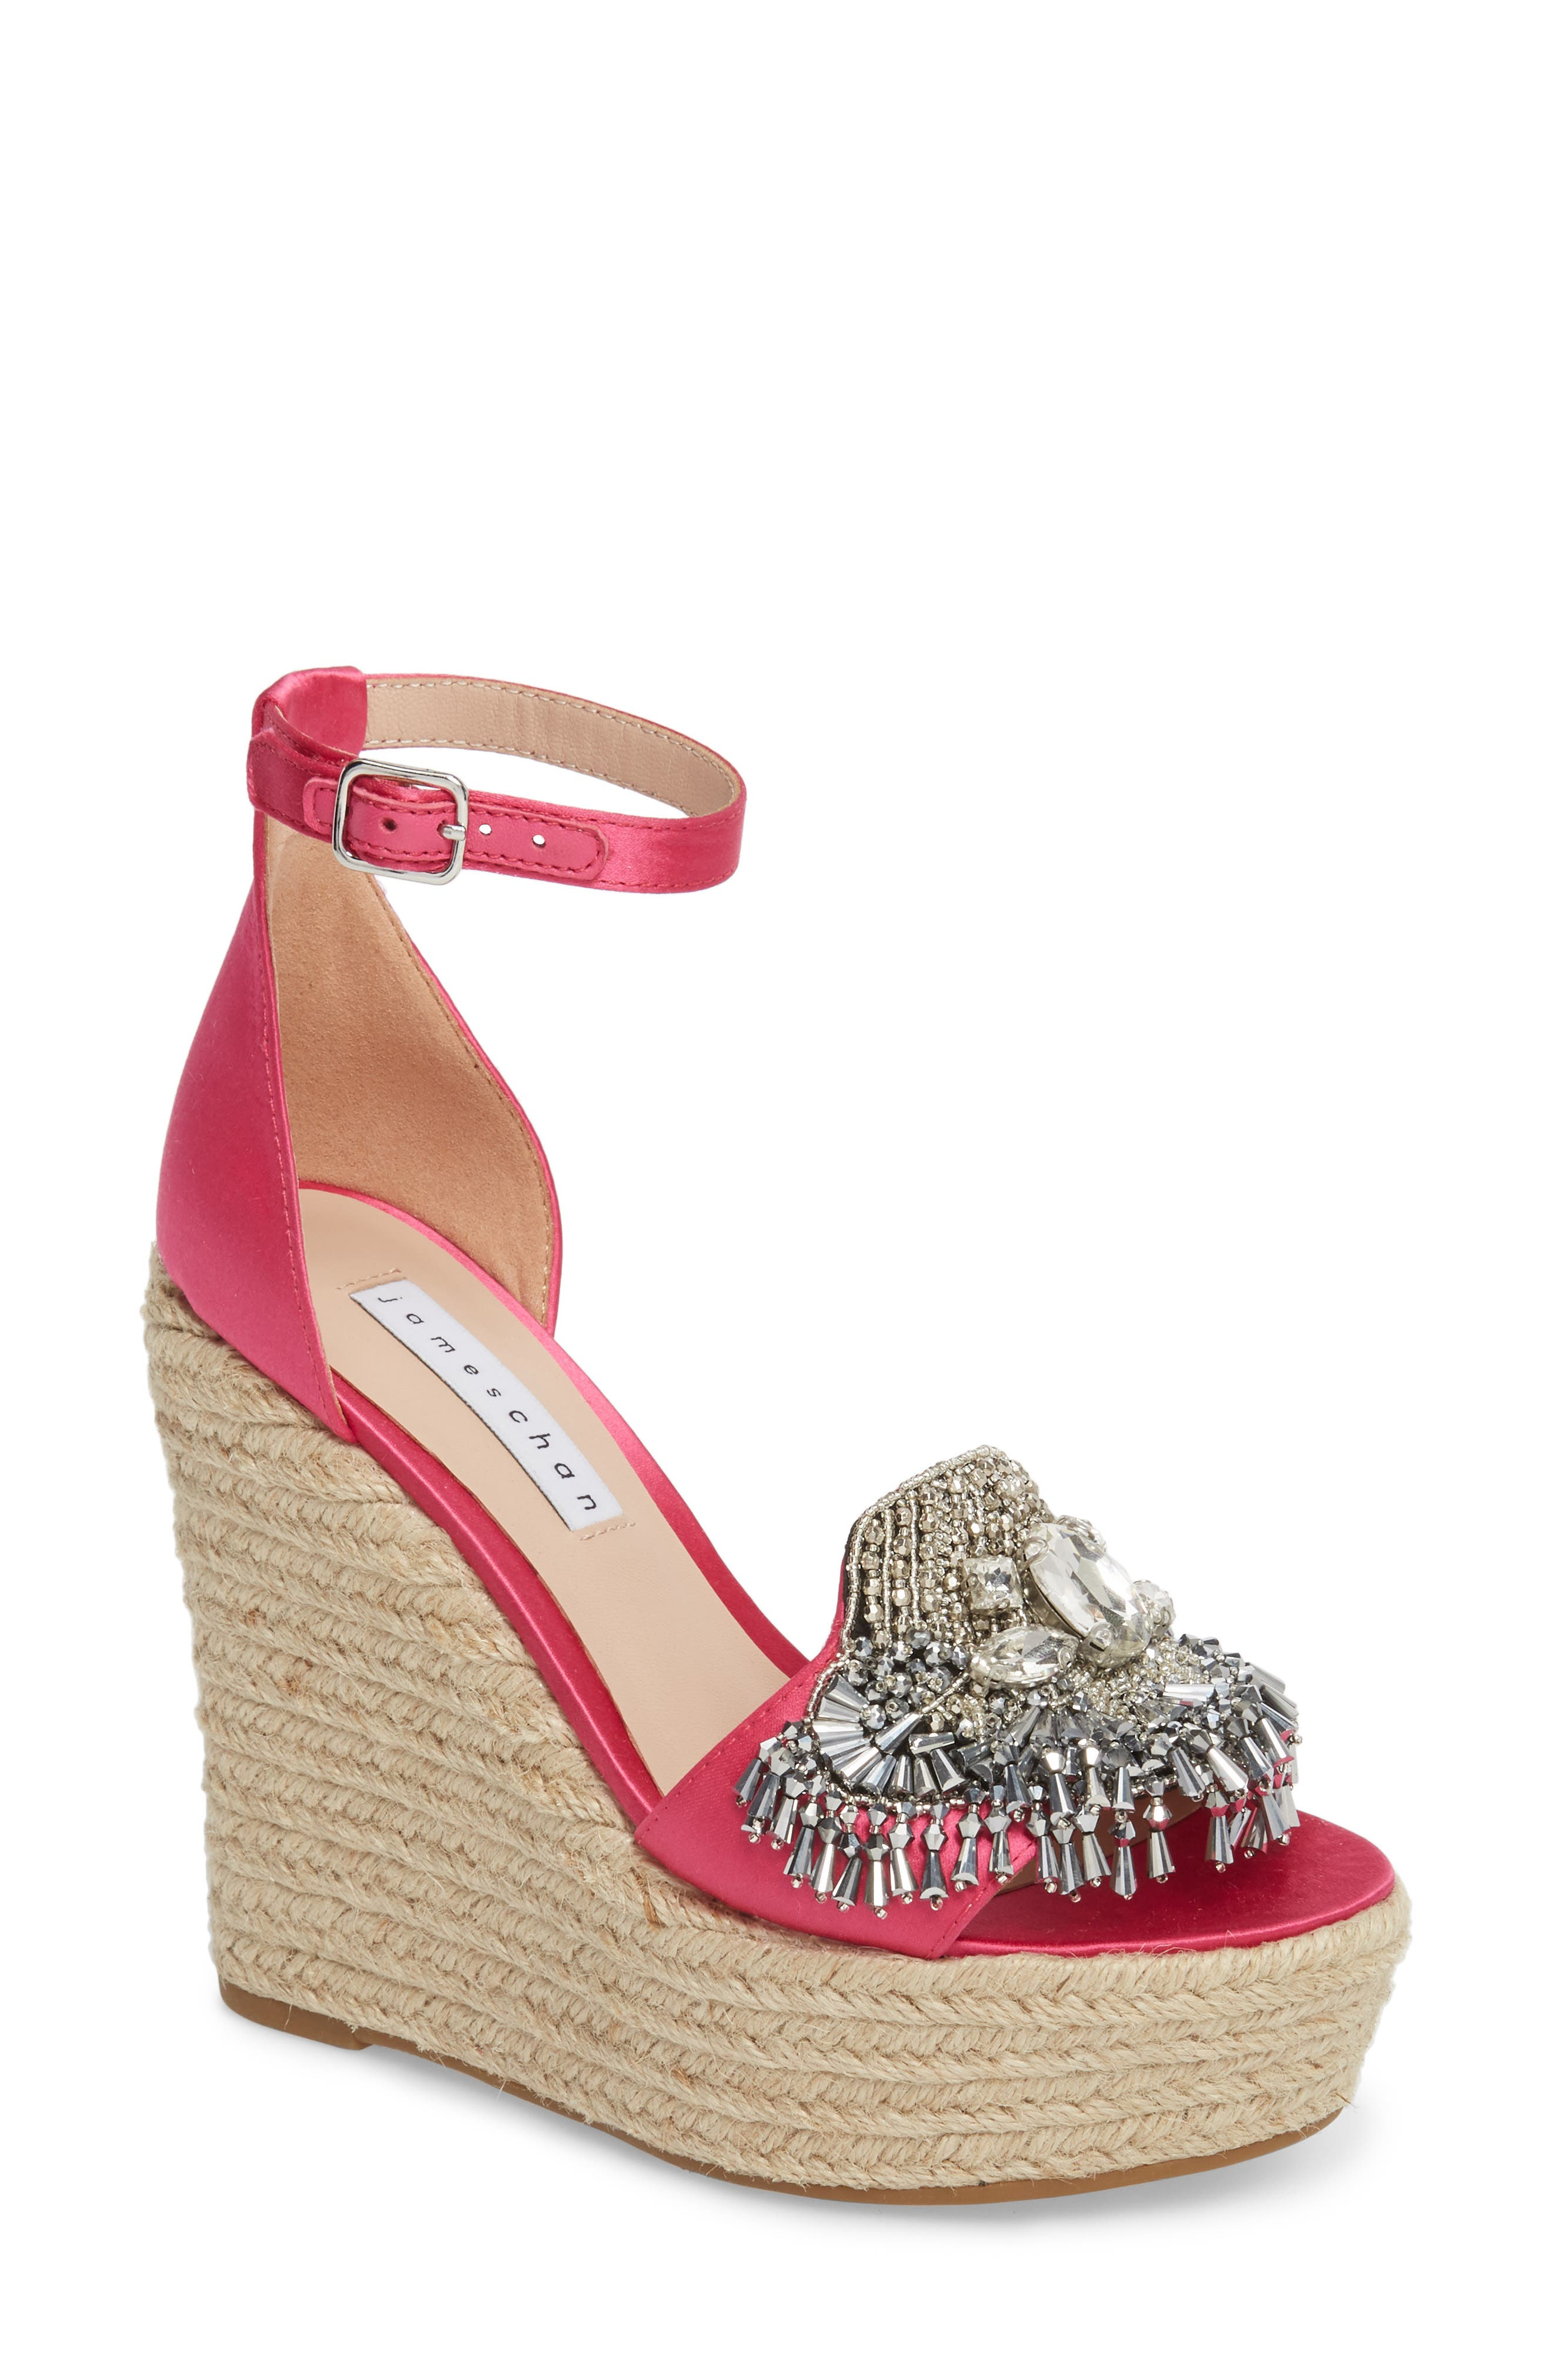 Maxim Platform Wedge Sandal,                         Main,                         color, Posey Satin